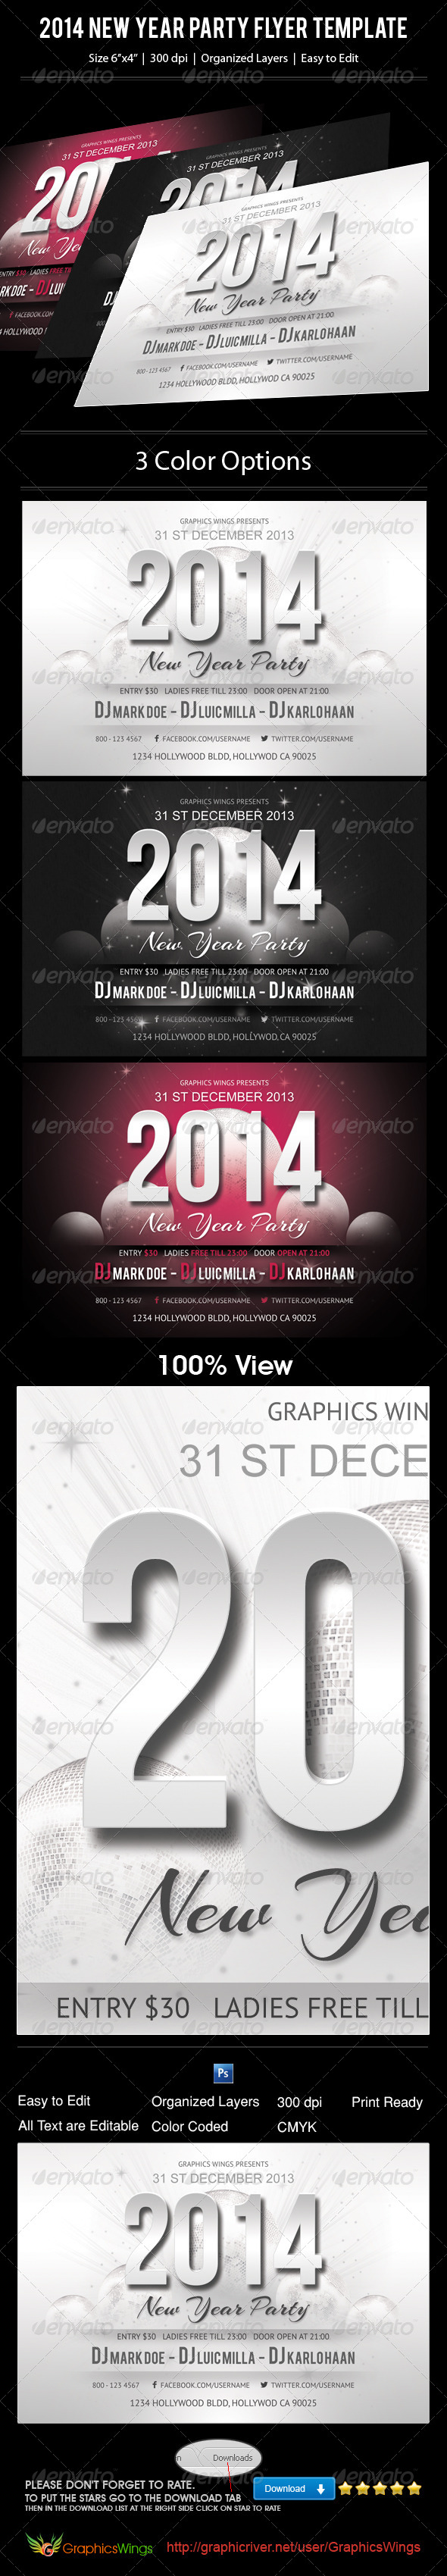 GraphicRiver 2014 New Year Party Flyer Template 6270346